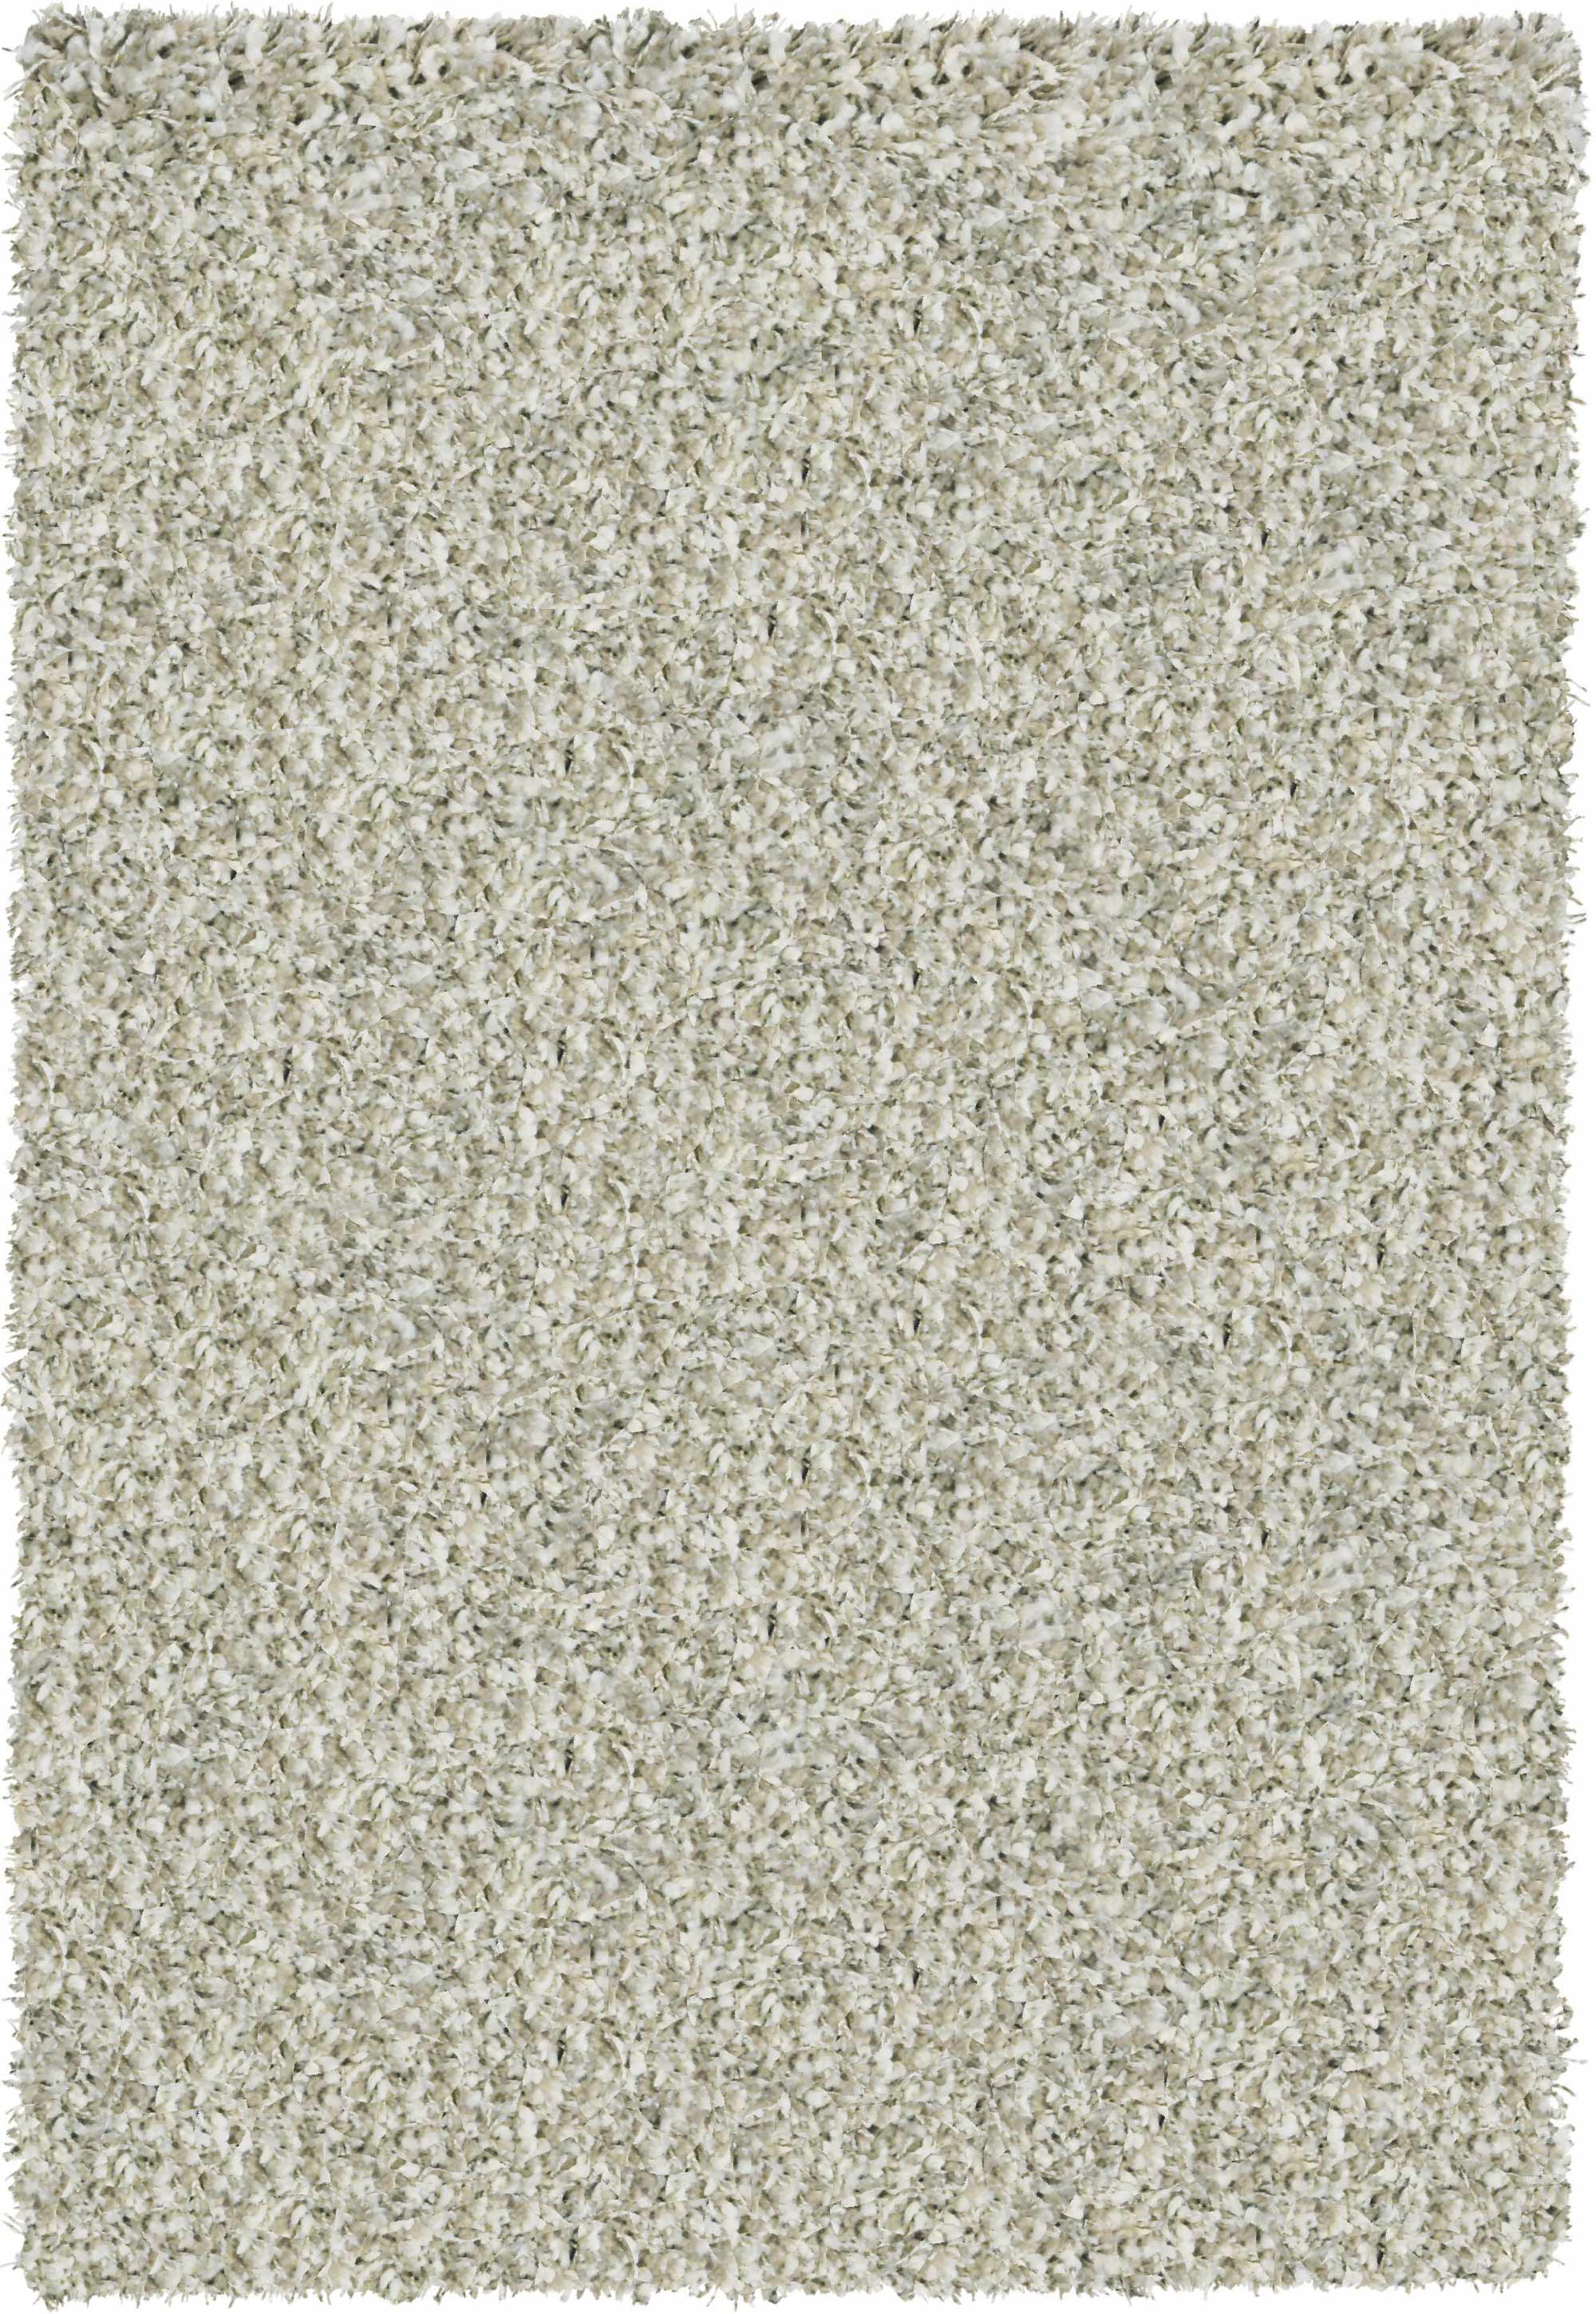 Twilight Rug White/Linen